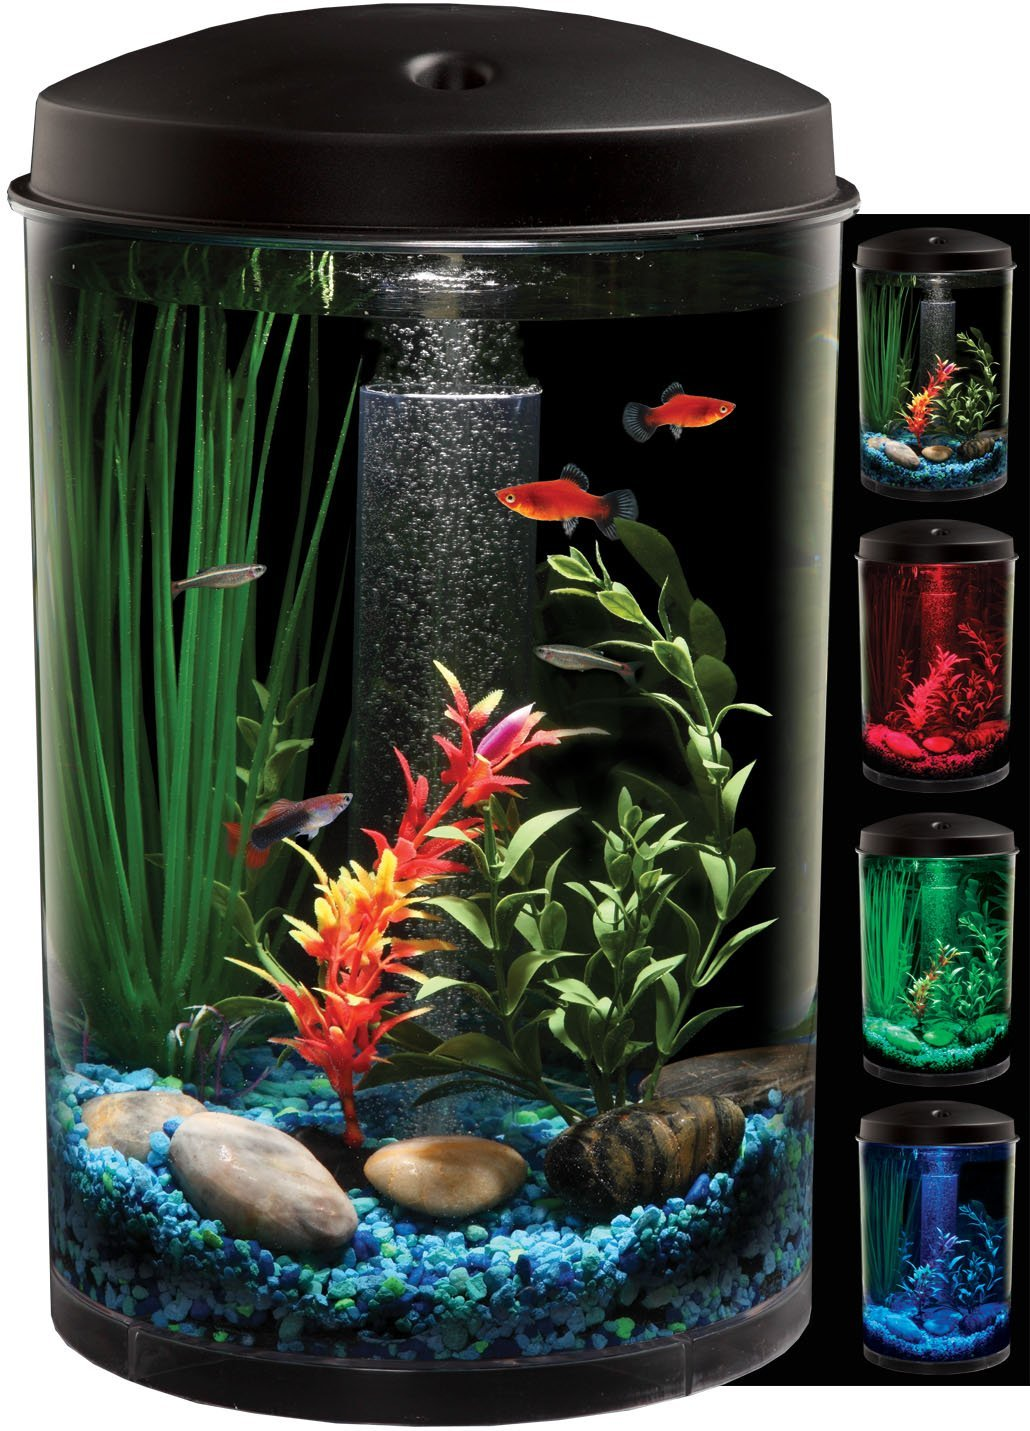 15 creative aquariums and modern fish tanks designs part 5 for Design aquarium